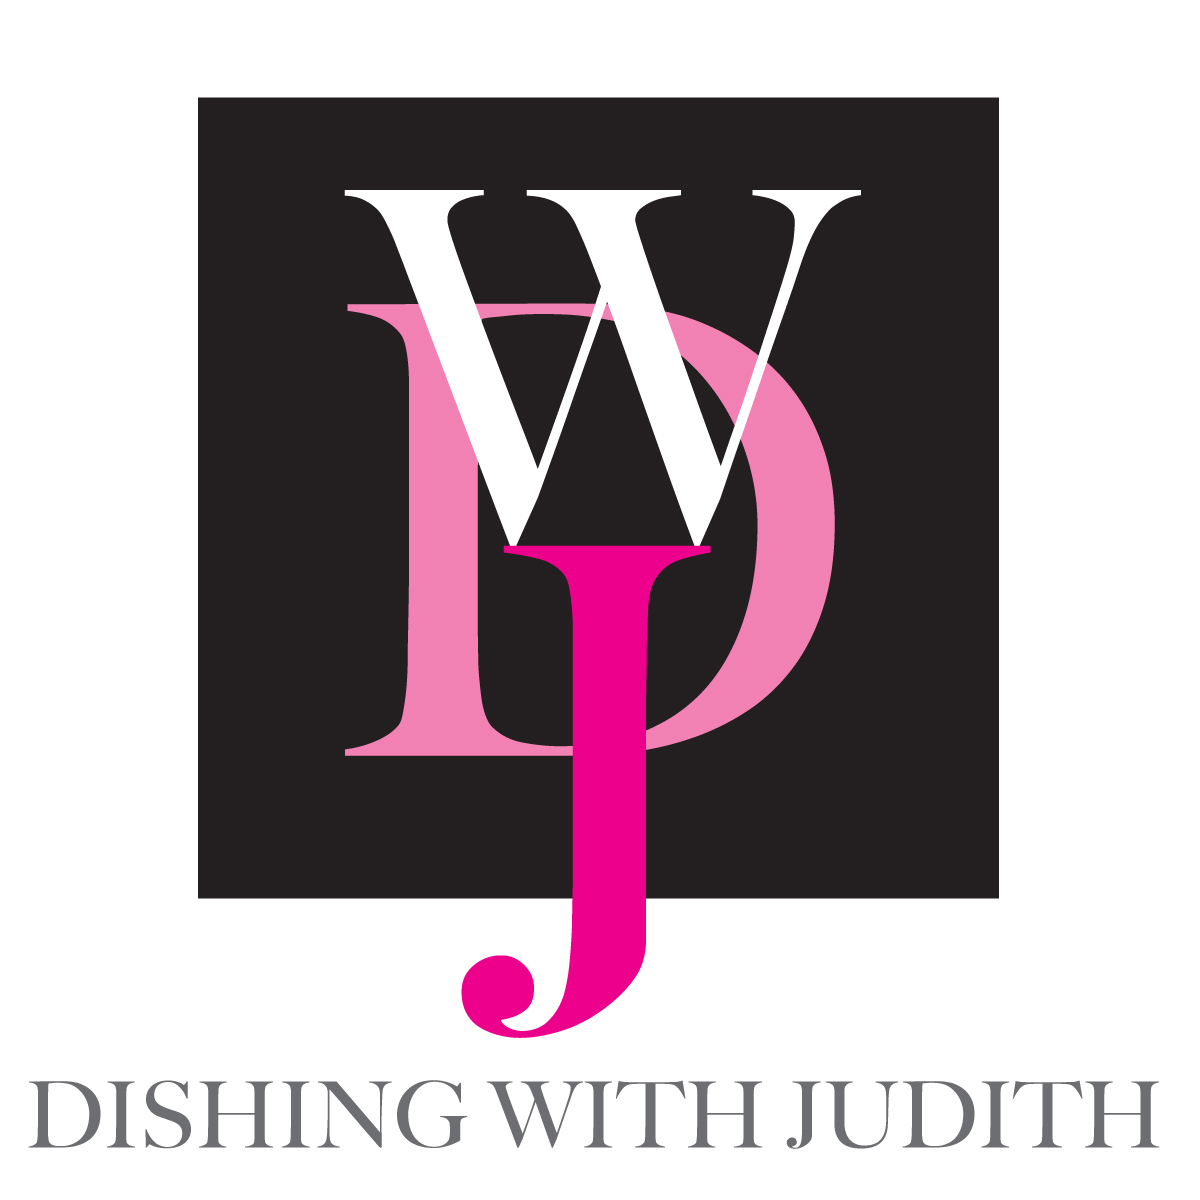 Dishing With Judith Logo